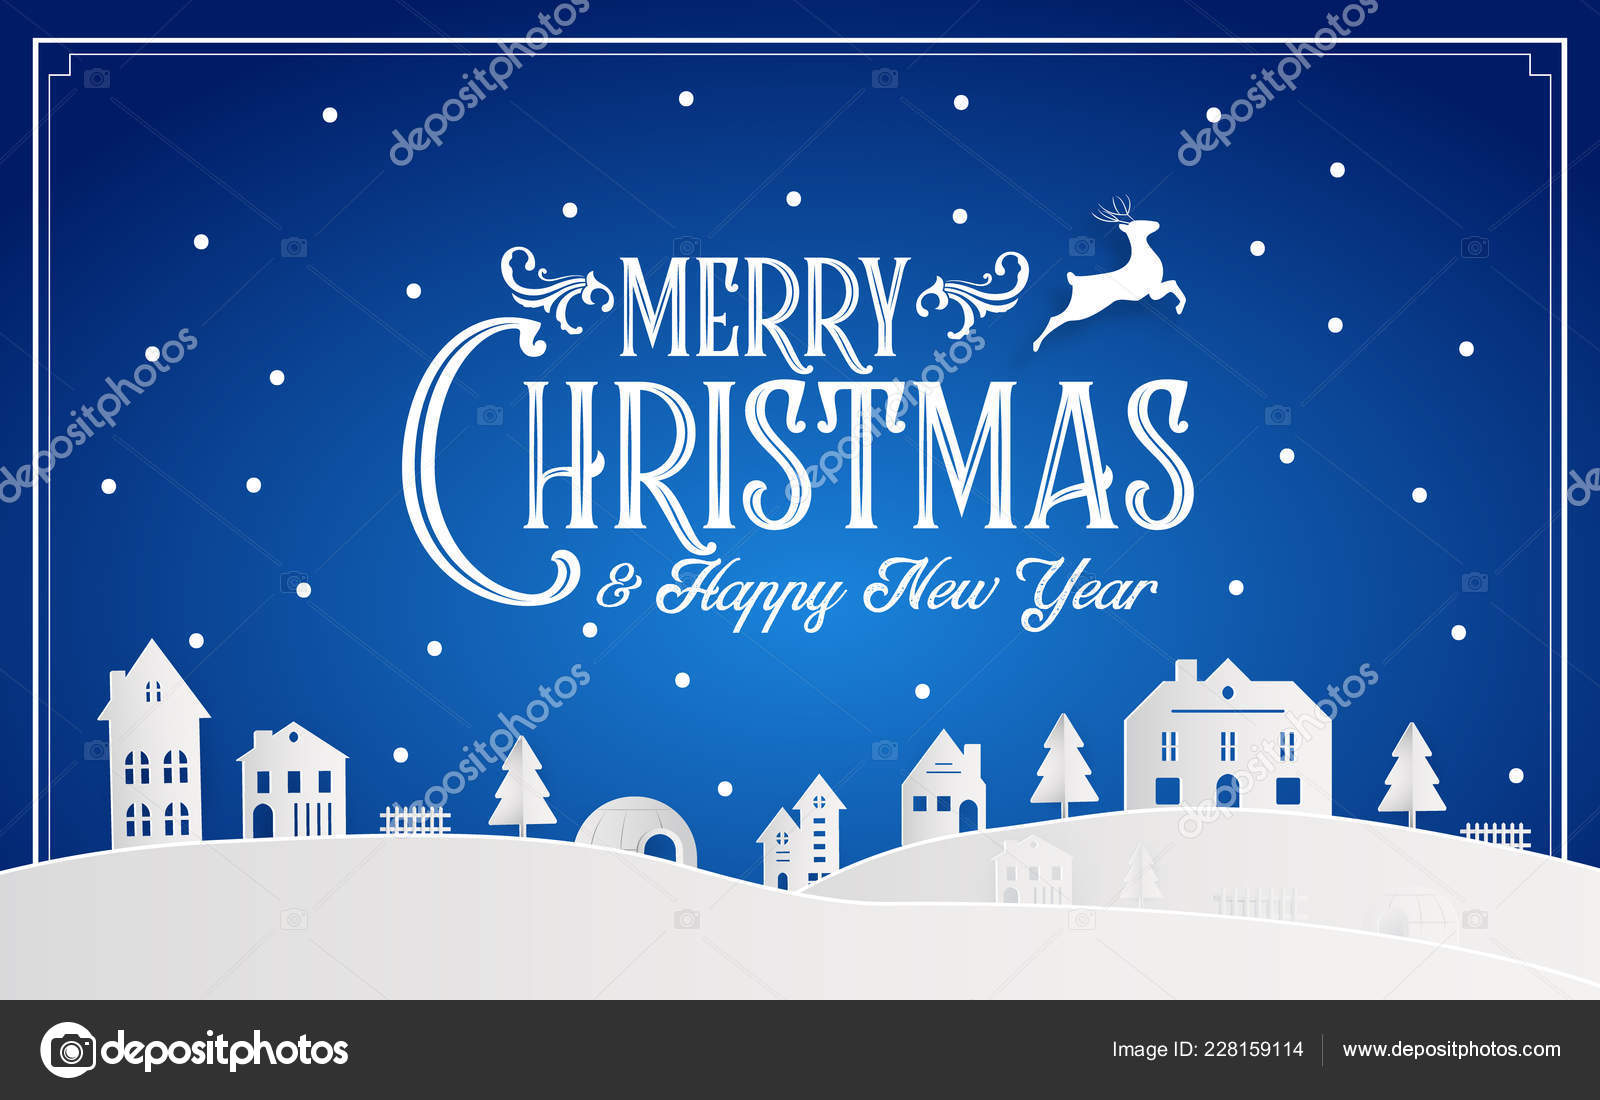 merry christmas happy new year 2019 snowy home town typography stock vector